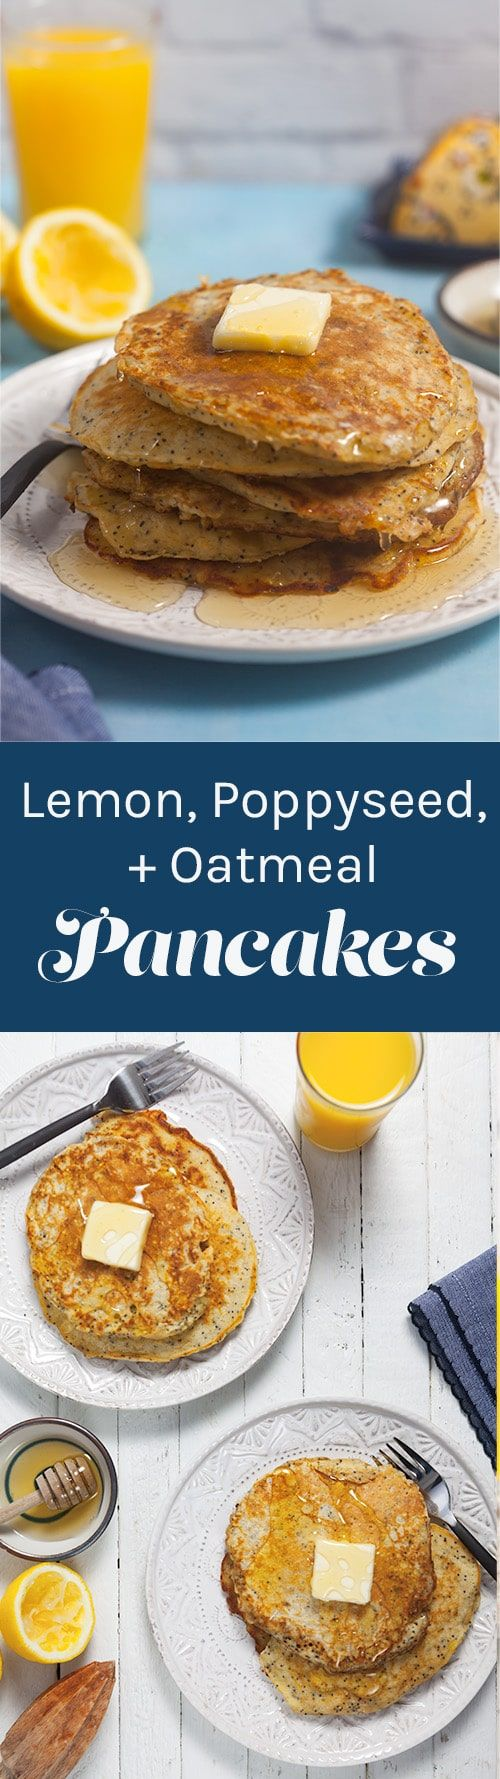 Lemon Poppy Pancakes are a delicious twist on a classic breakfast. They're made with wholesome ingredients like coconut milk and oats and they're naturally sweetened with honey, so you can feel good about feeding them to your family. ~ http://www.healthy-delicious.com